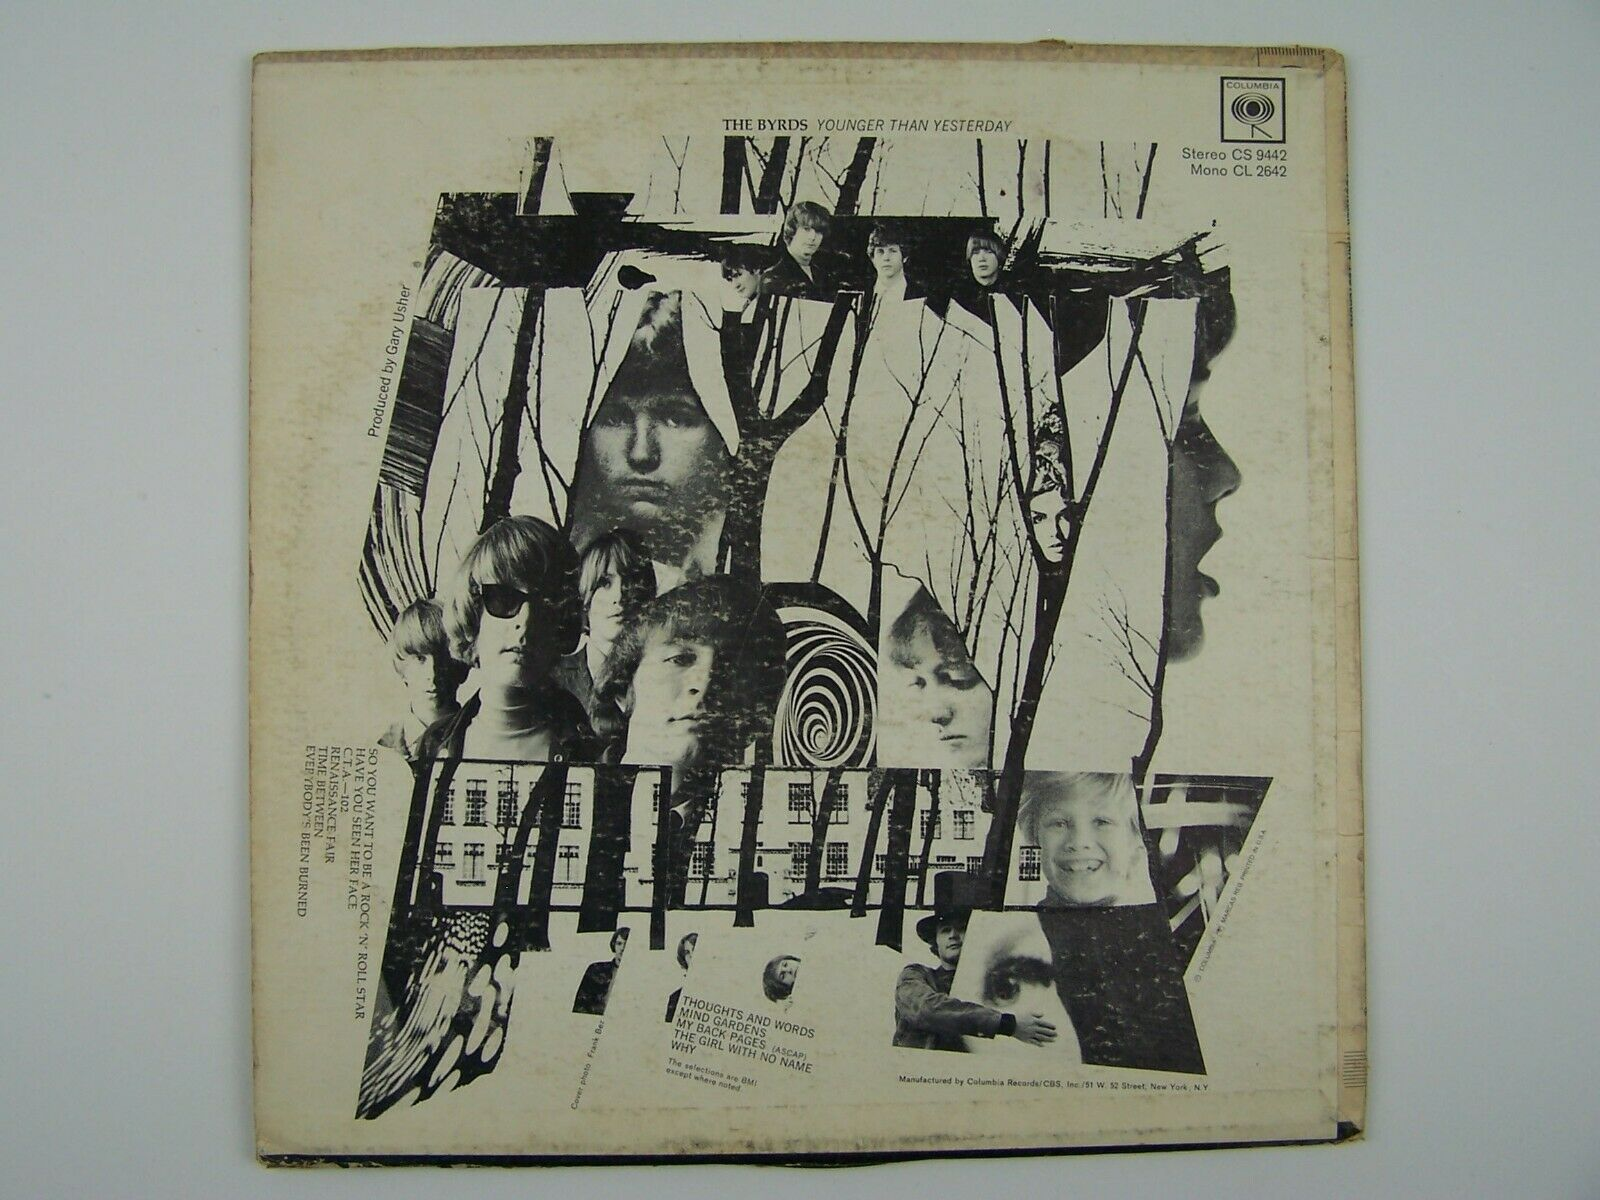 The Byrds - Younger Than Yesterday Vinyl LP Record Album CL 2642 MONO